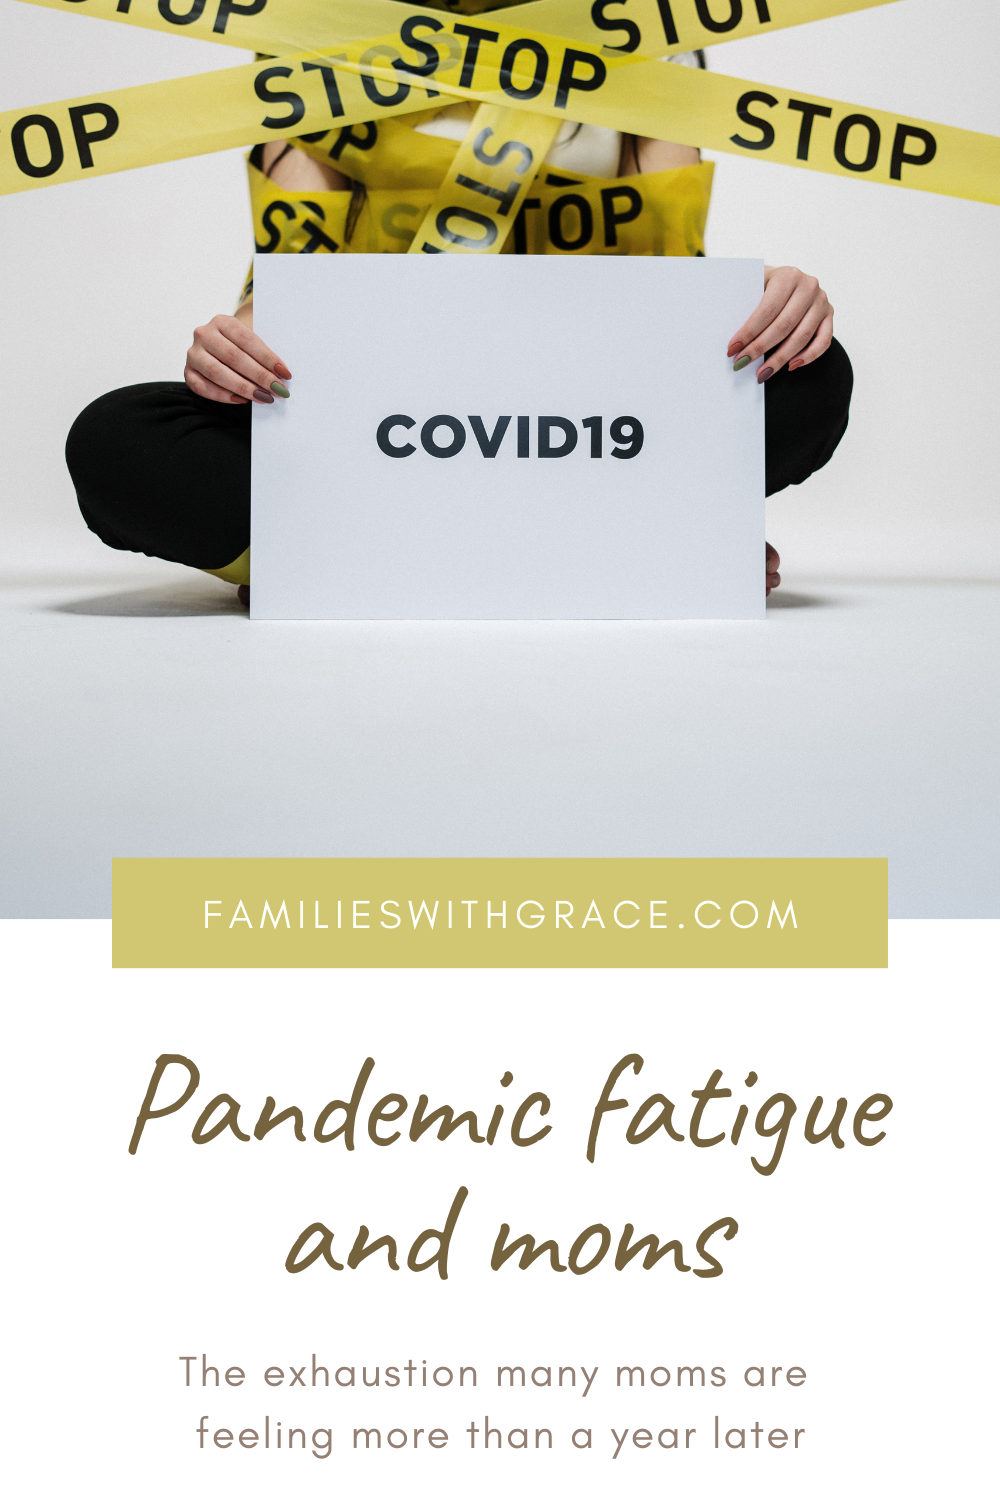 Pandemic fatigue and moms